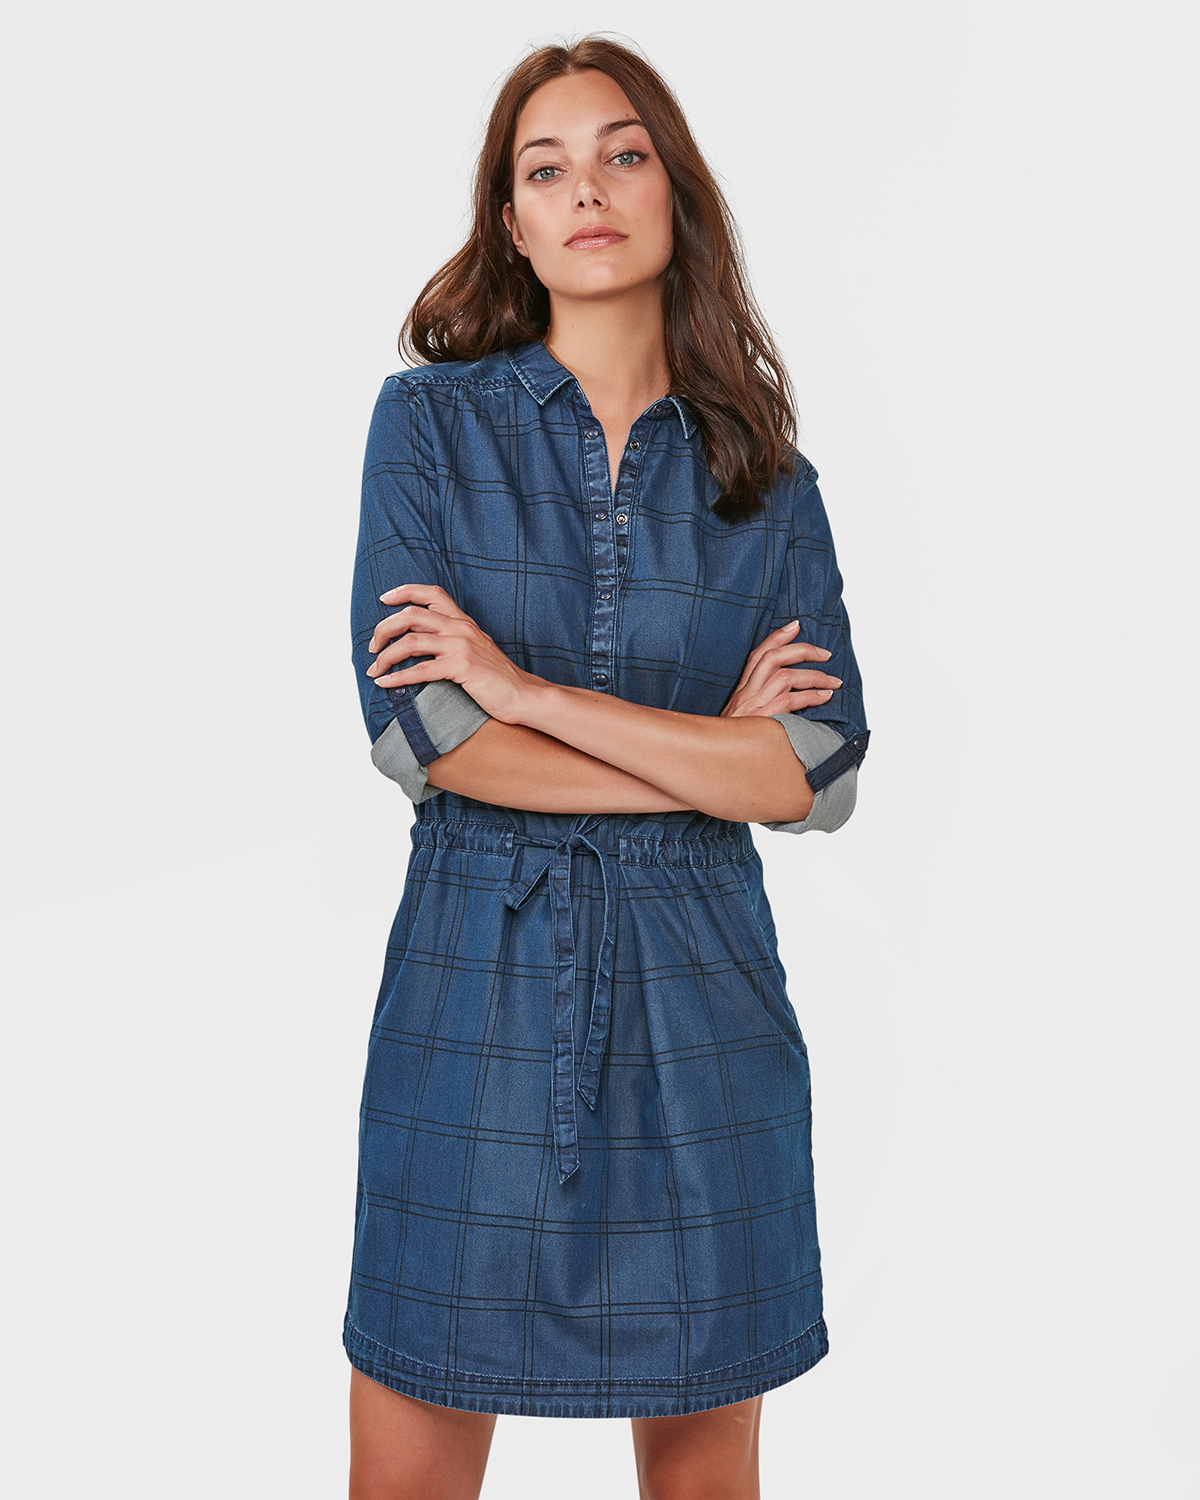 9256c5a521b ... ROBE-CHEMISIER DENIM CHECKED FEMME Bleu